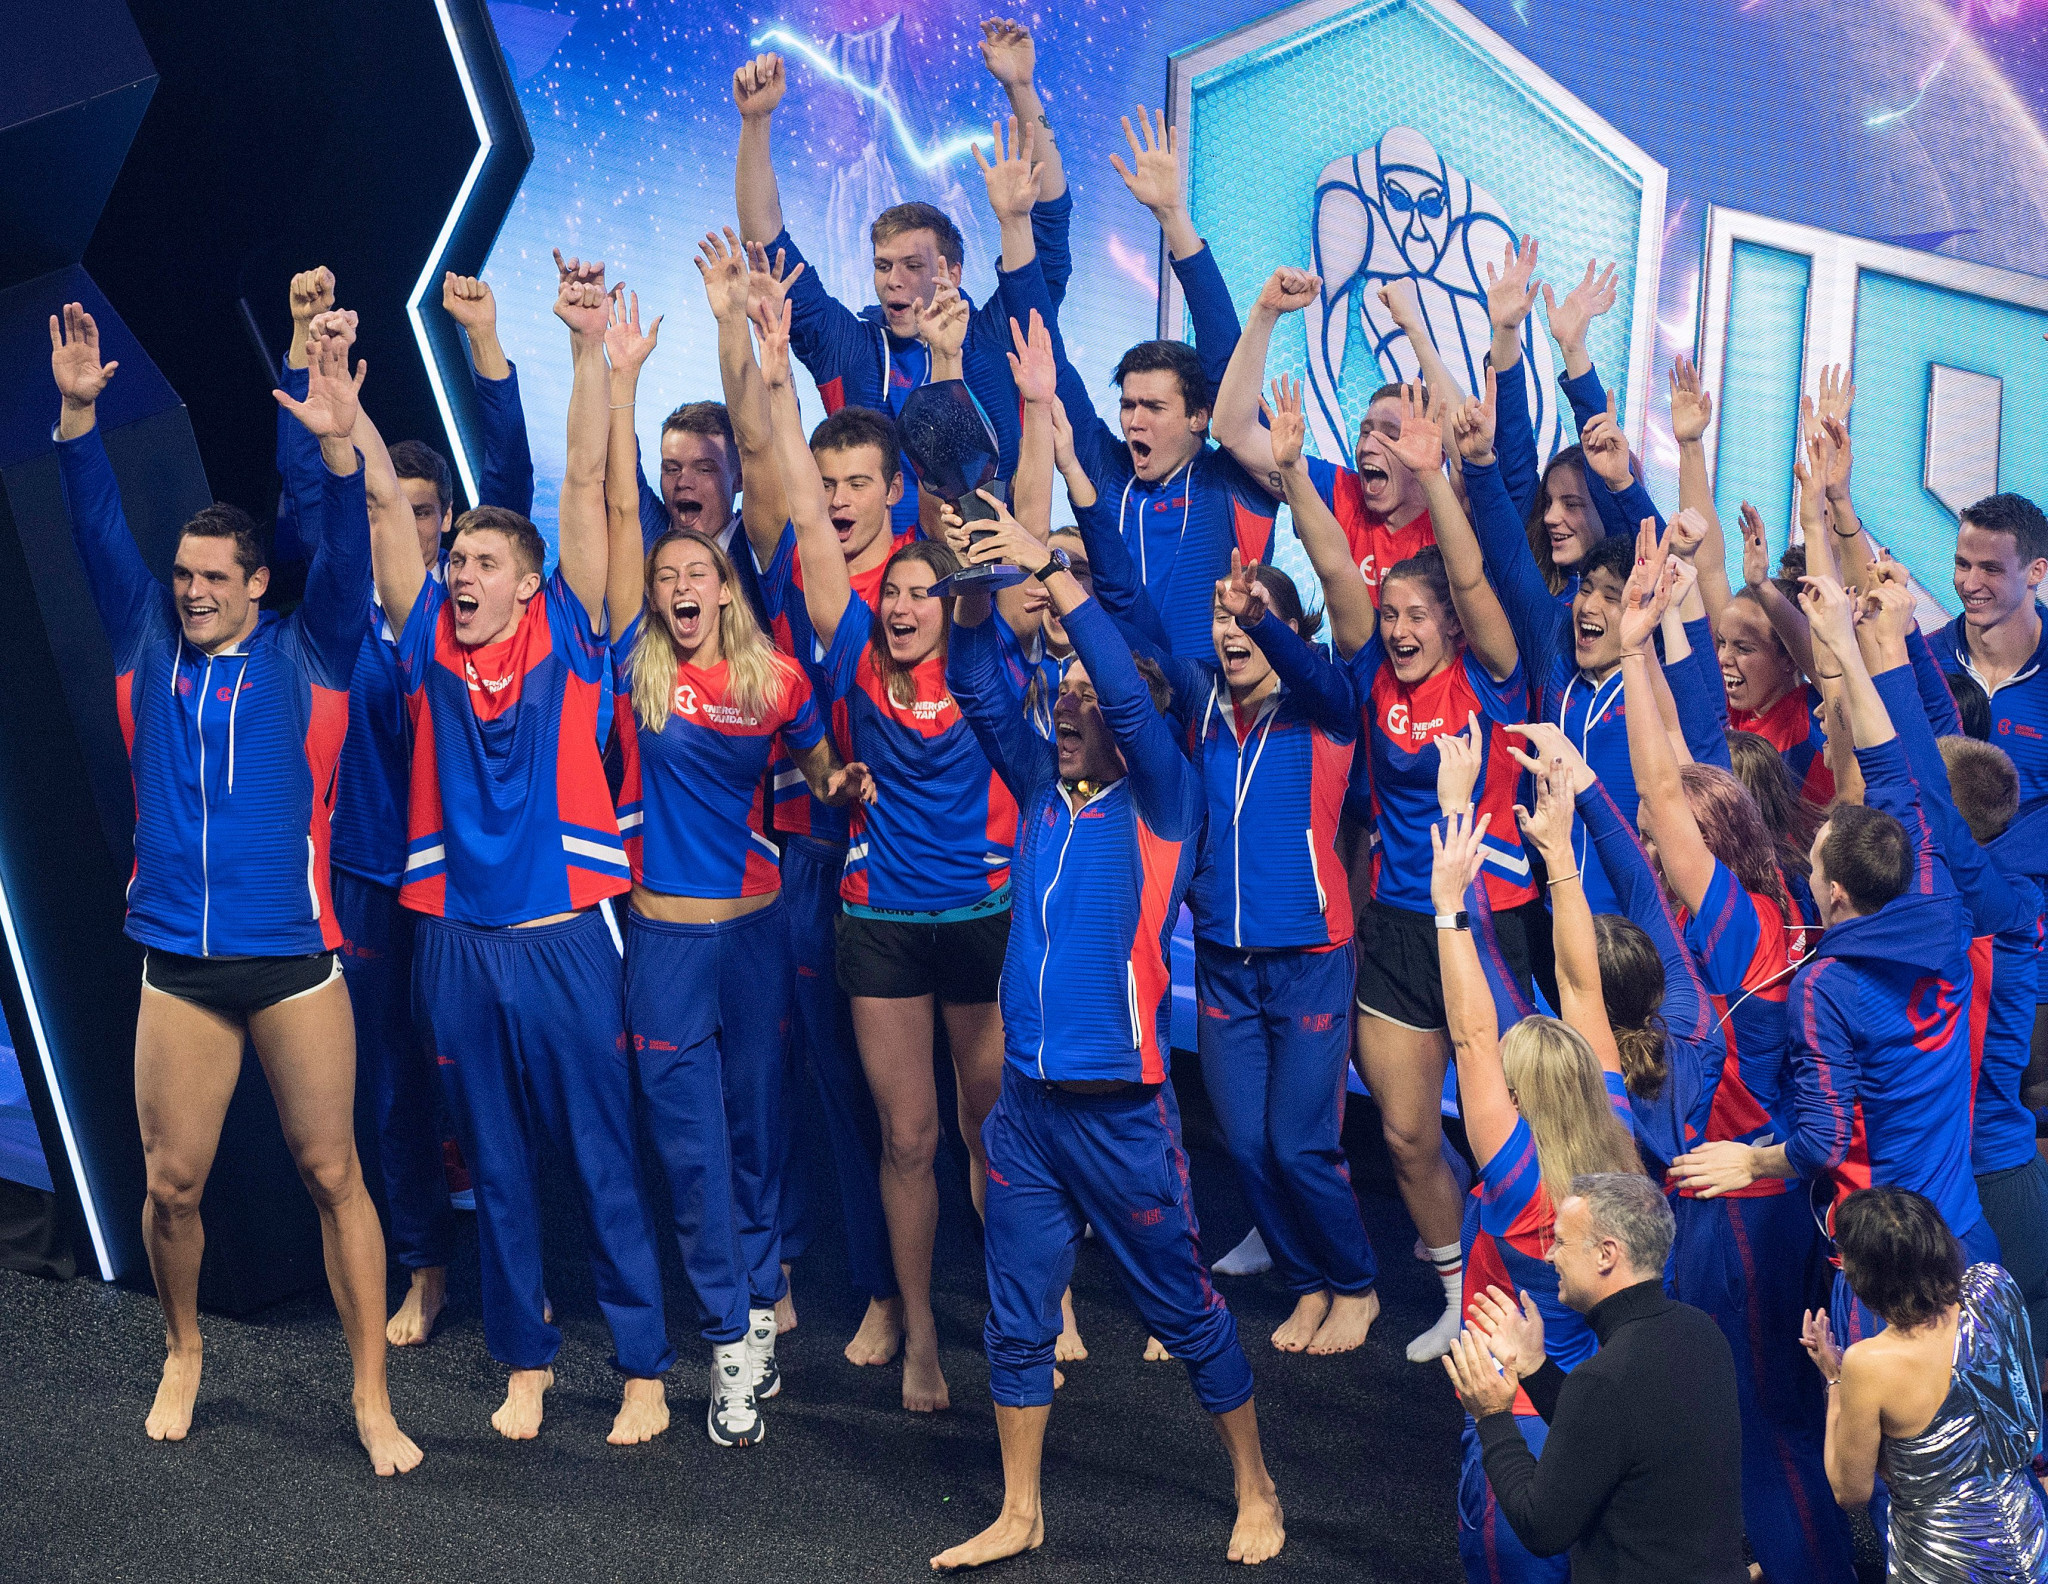 Defending champions Energy Standard could only finish second behind the Cali Condors in their first match of this year's International Swimming League ©Getty Images